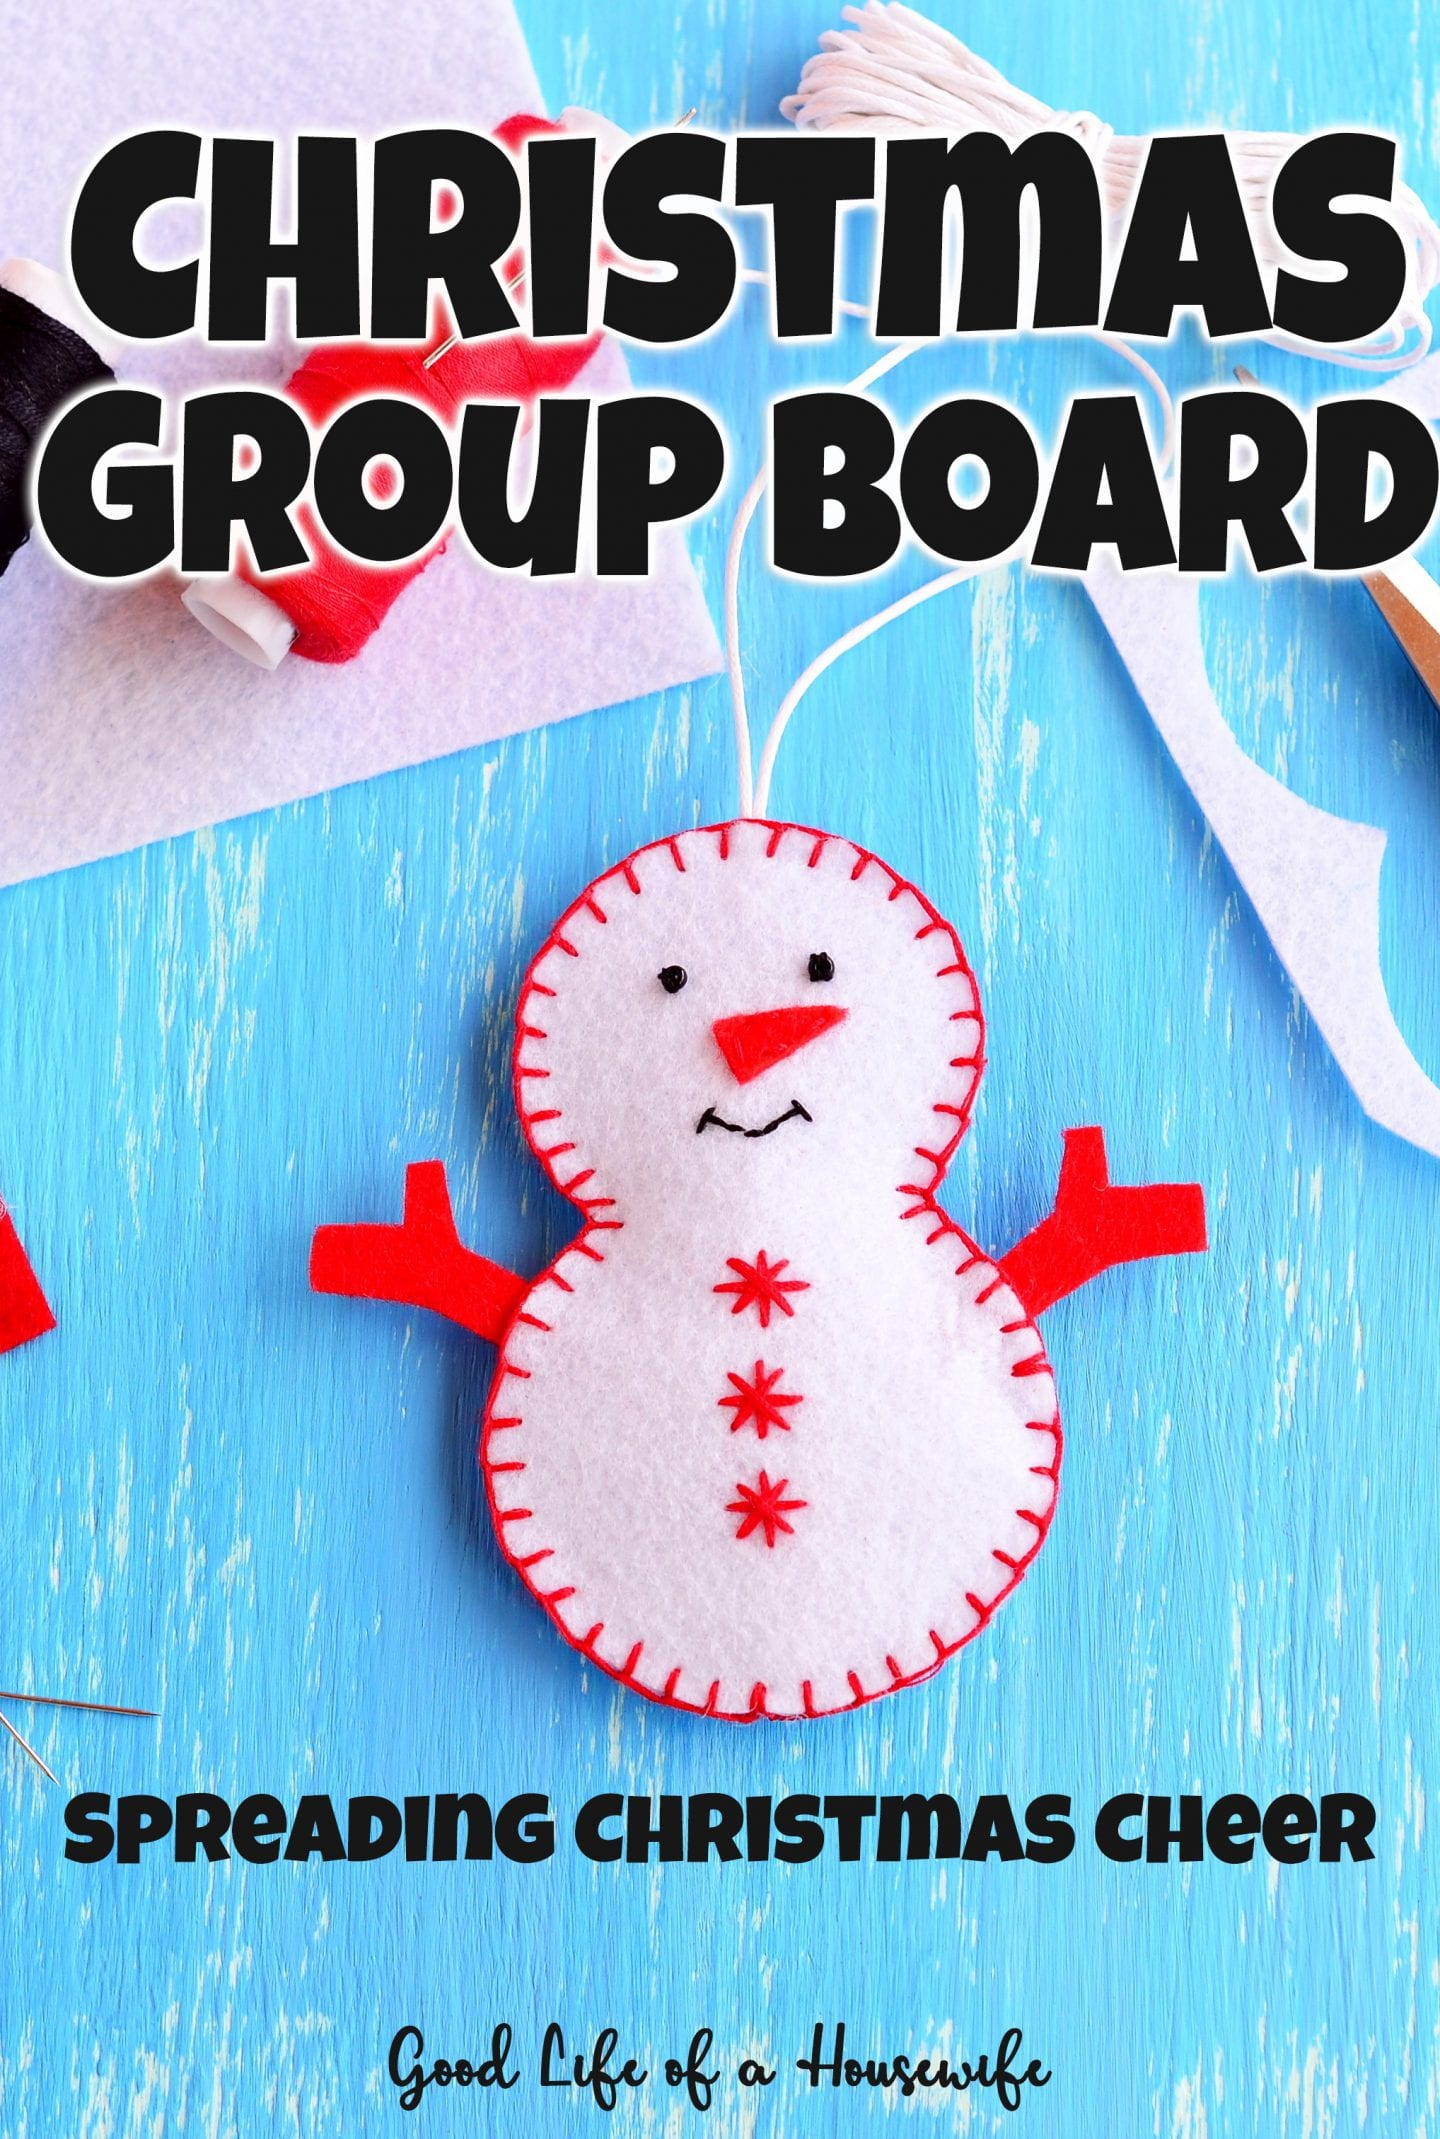 Spreading Christmas Cheer through our Christmas Group Board